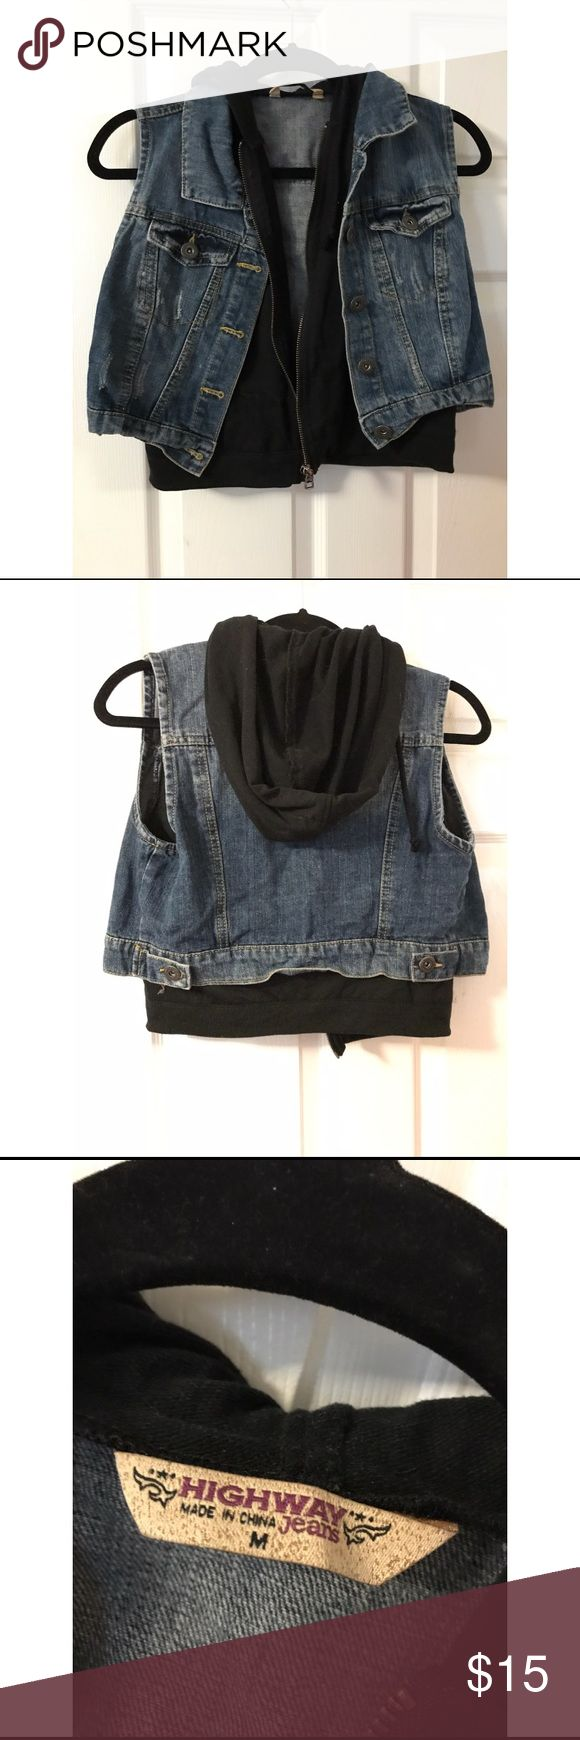 Sleeveless denim jacket Sleeveless denim jacket lined with a black light sweater with a hood. NWOT Jackets & Coats Vests